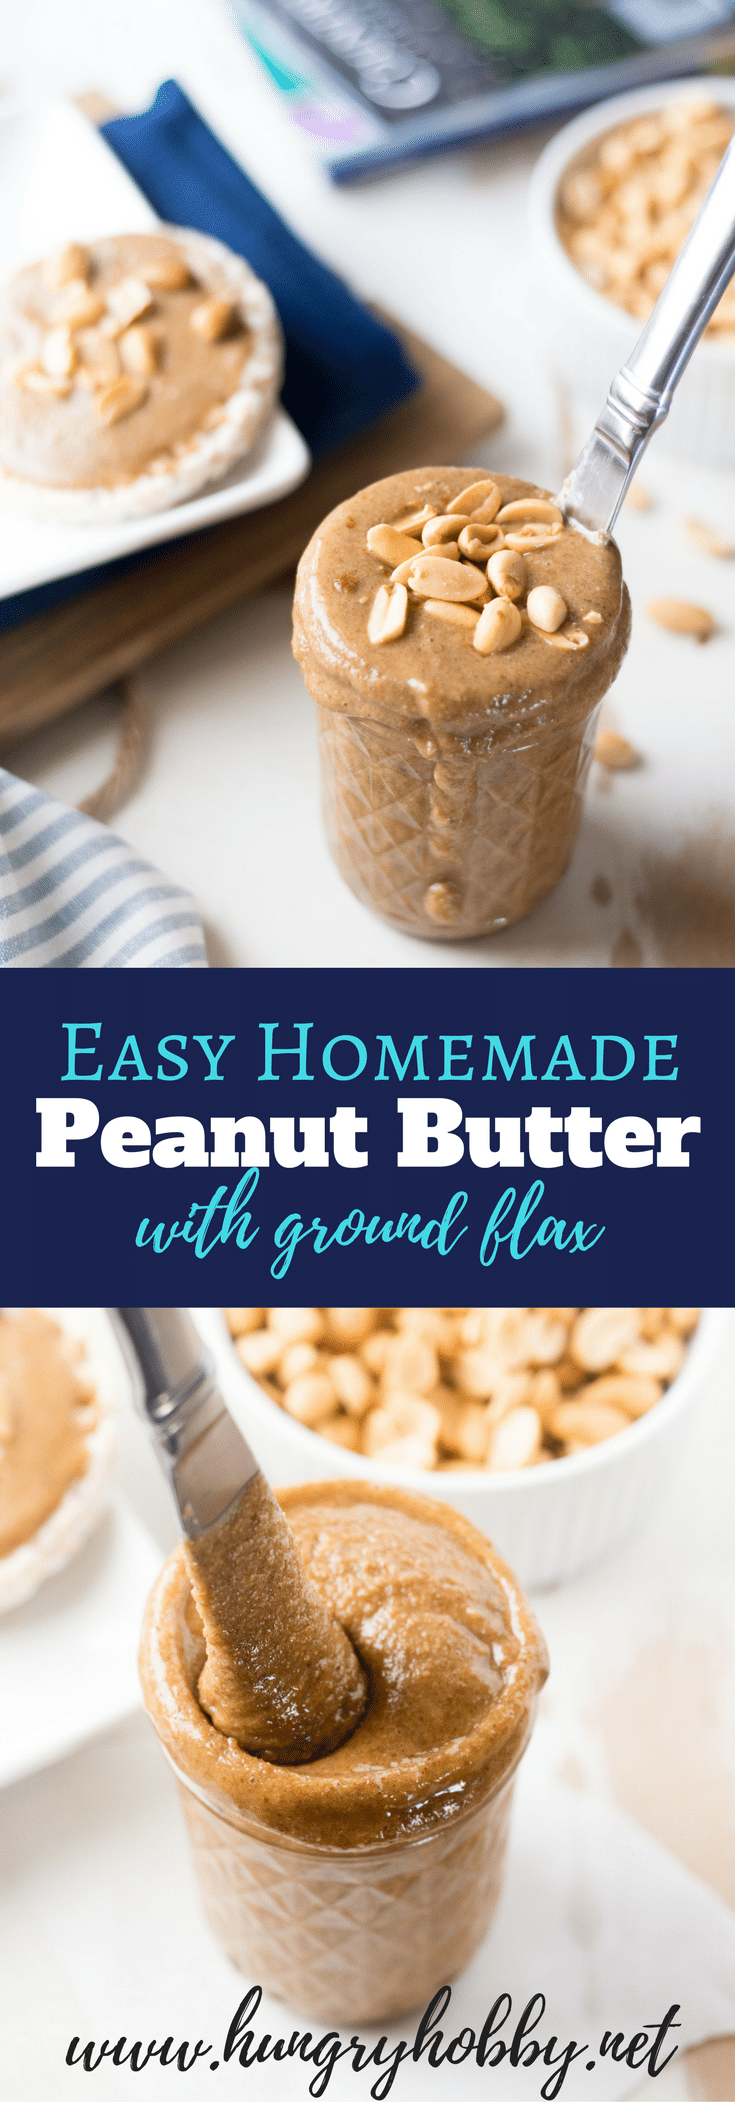 This homemade peanut butter is easier to make than you think & tastier than anything you will find at the store! Packed with anti-inflammatory omega 3 rich flaxseed!